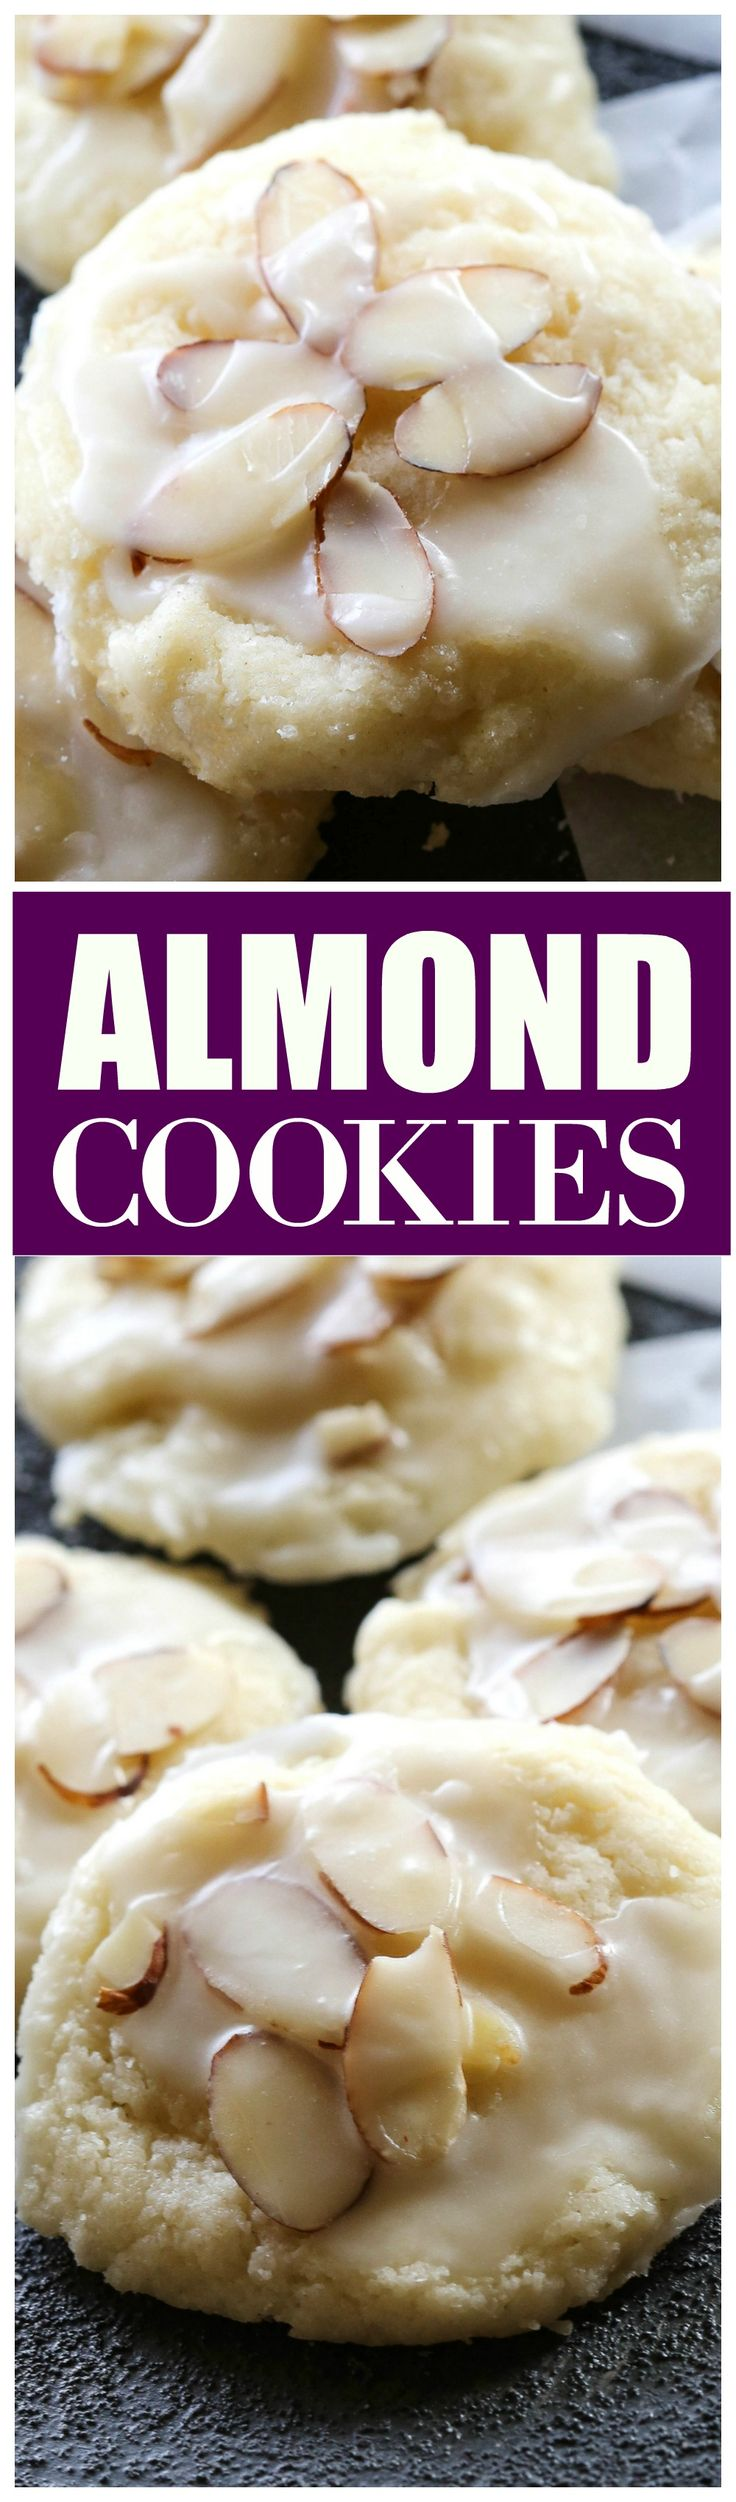 Almond Cookies - a family favorite we all love! the-girl-who-ate-everything.com